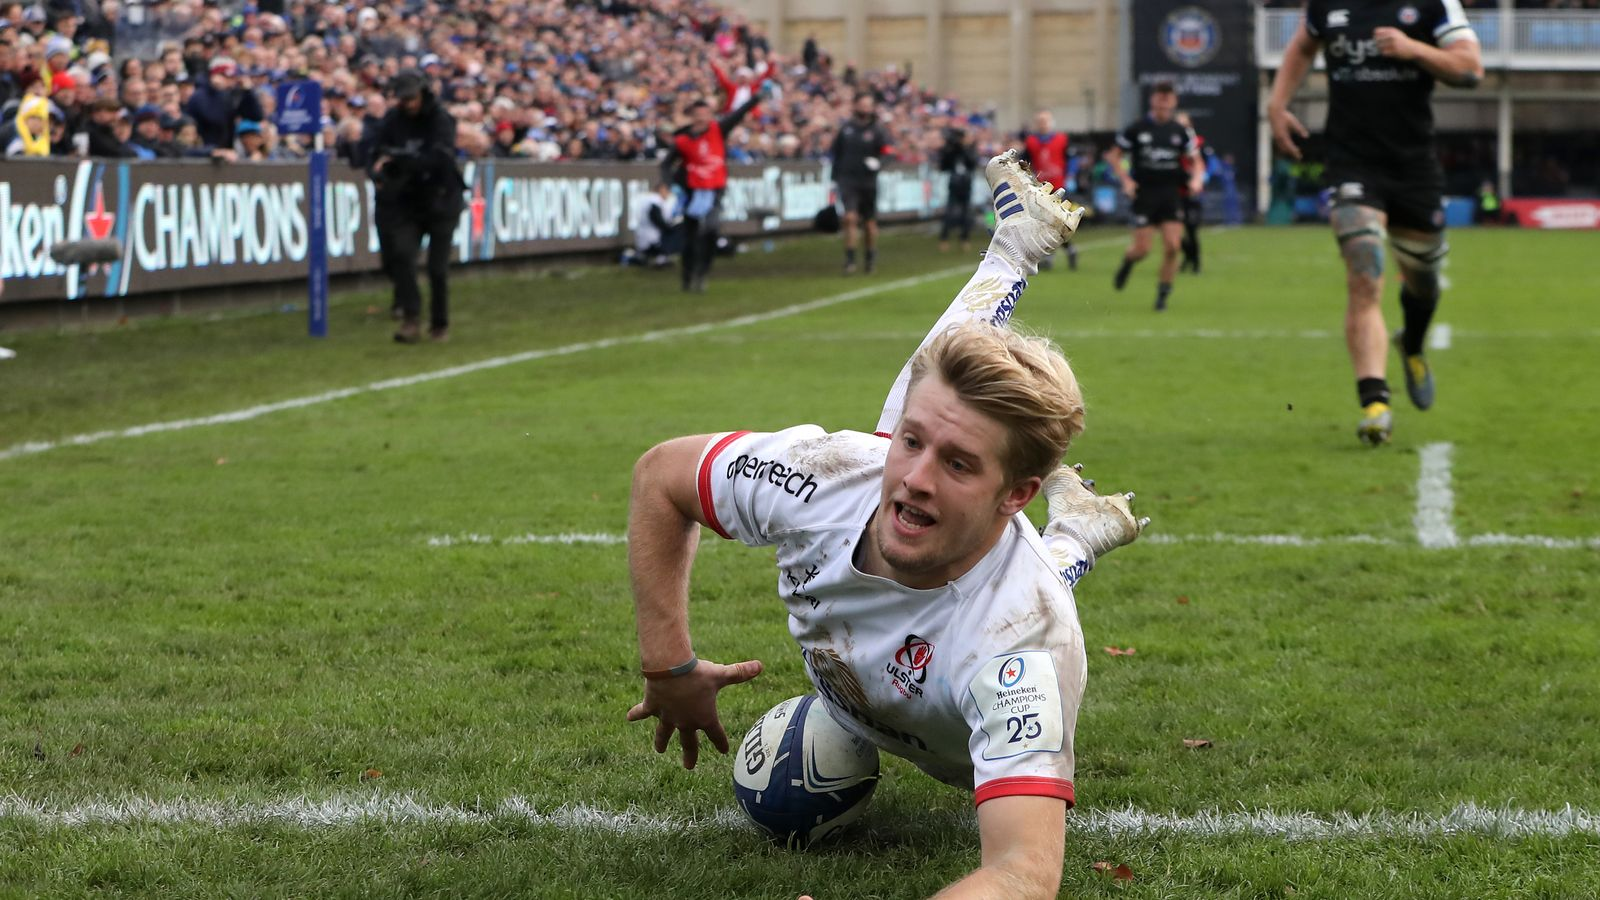 Bath 16-17 Ulster: John Cooney and Rob Lyttle tries help Ulster to Champions Cup win